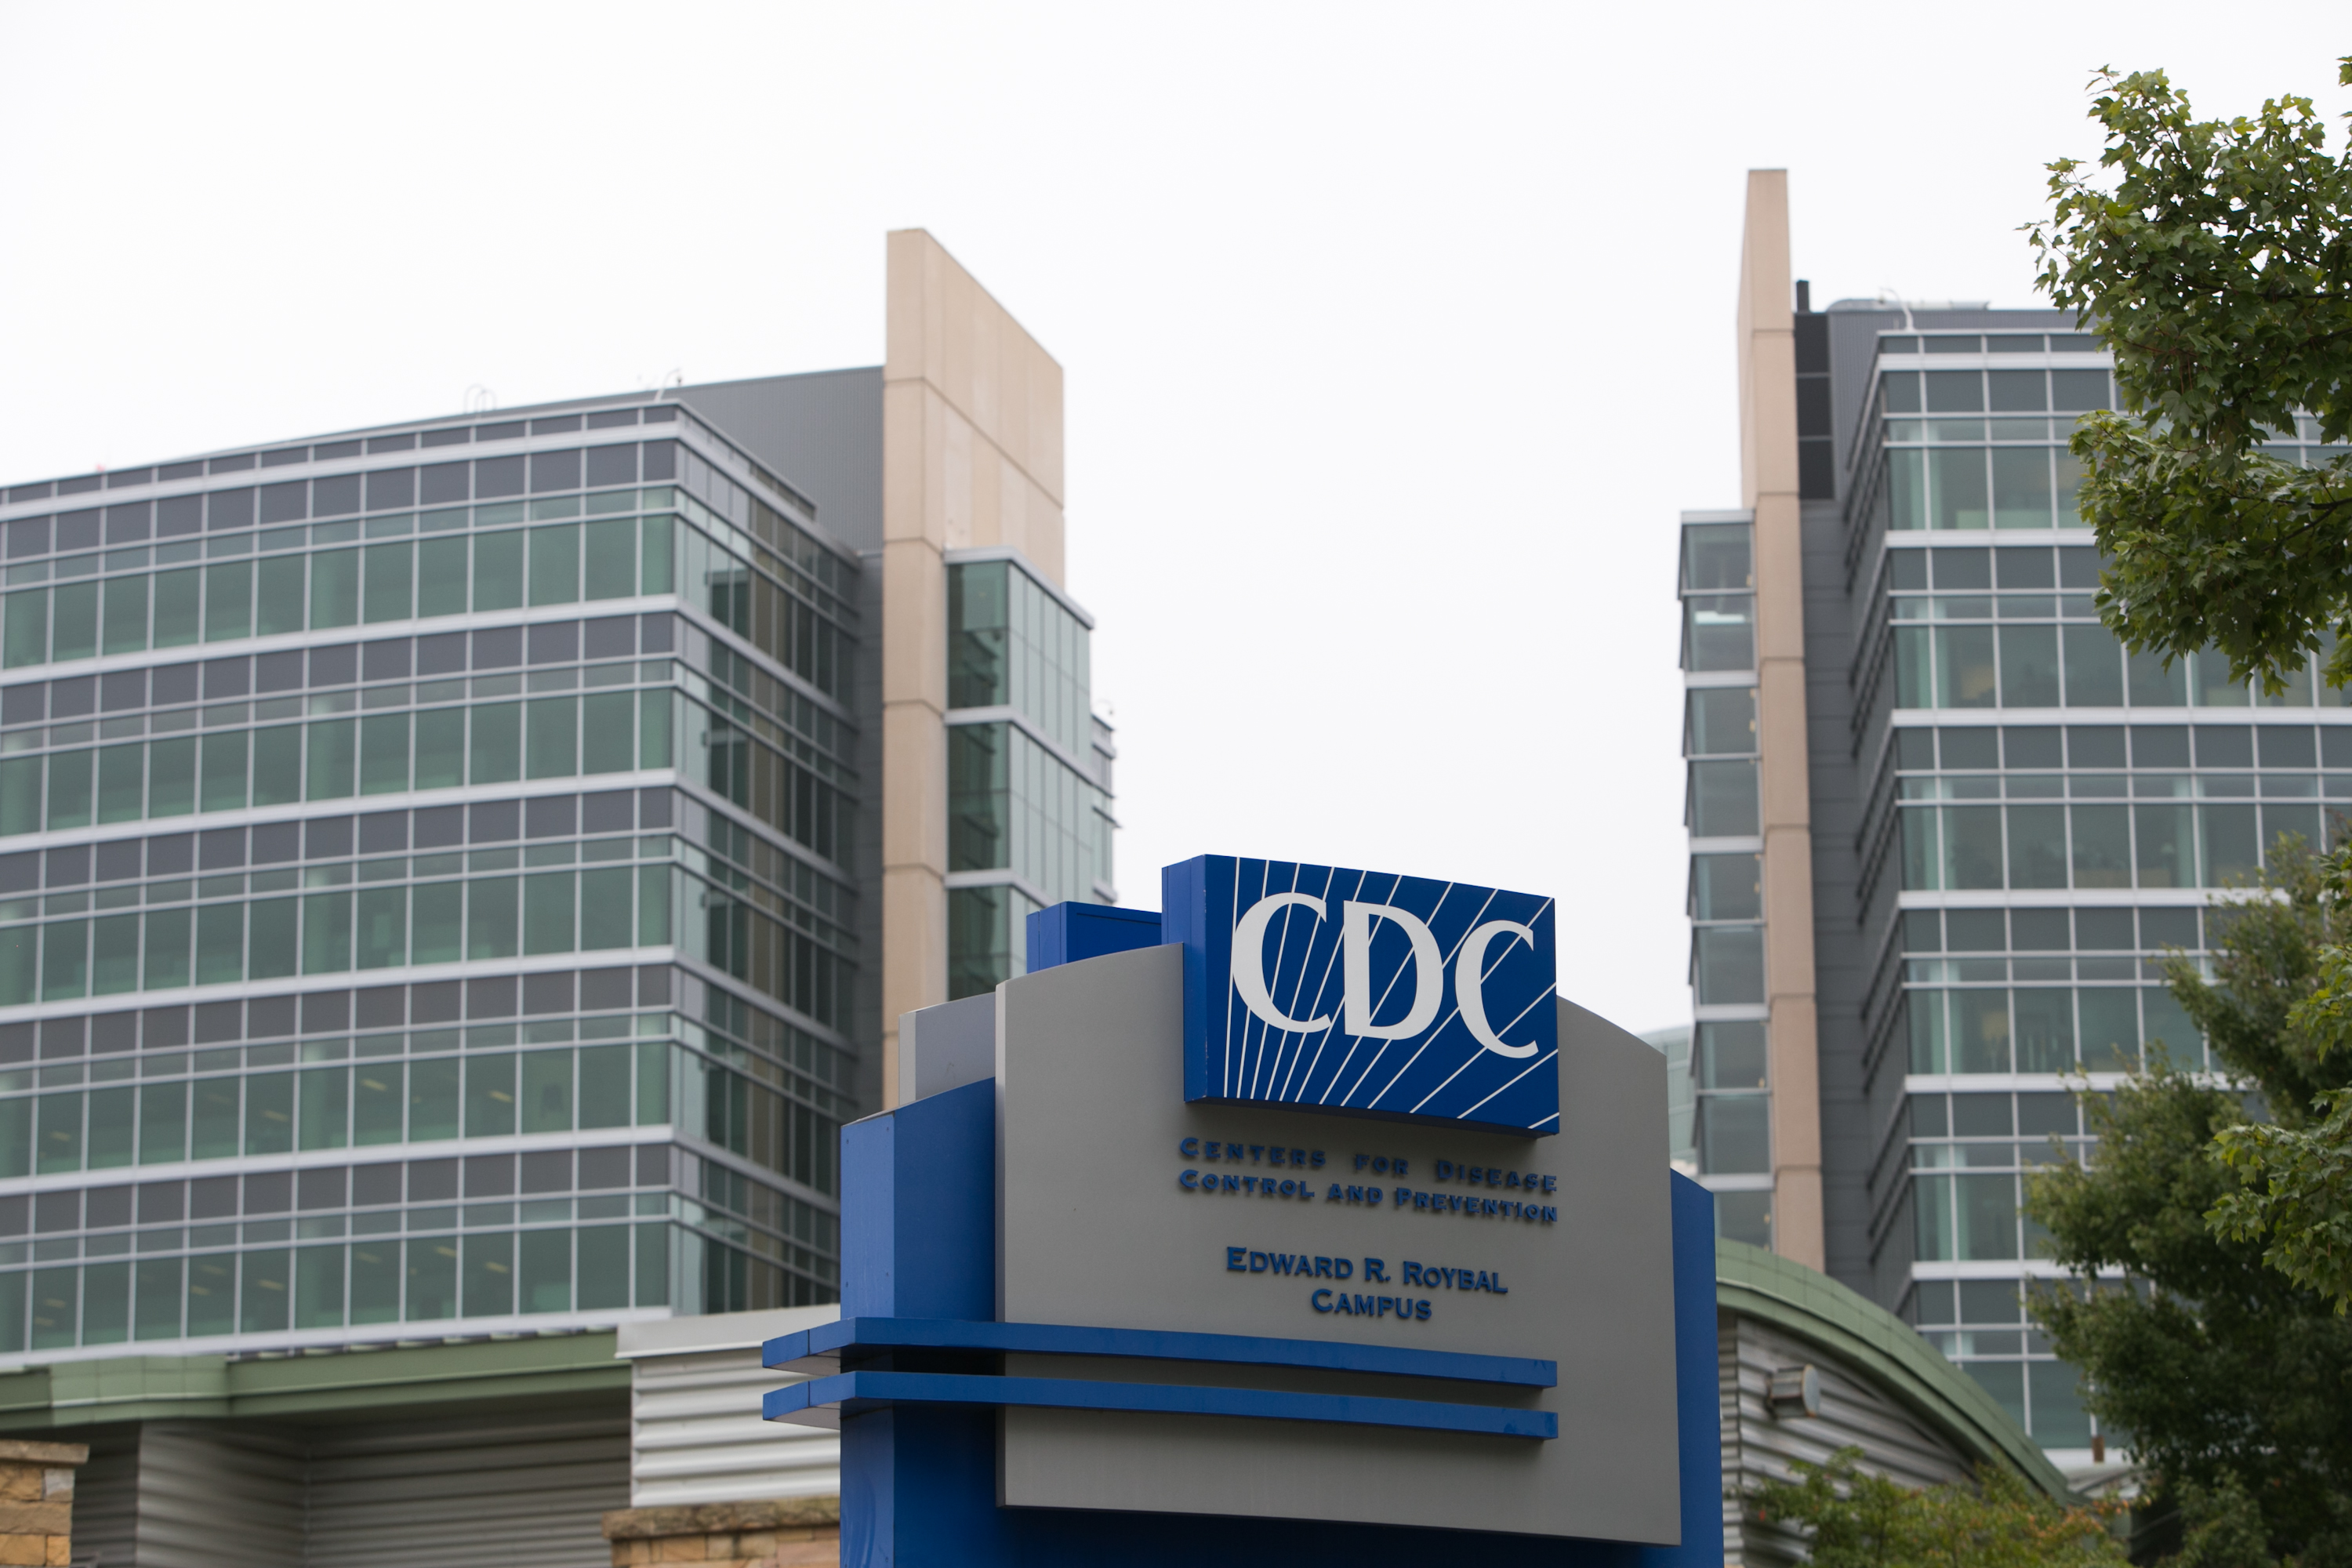 CDC headquarters in Atlanta